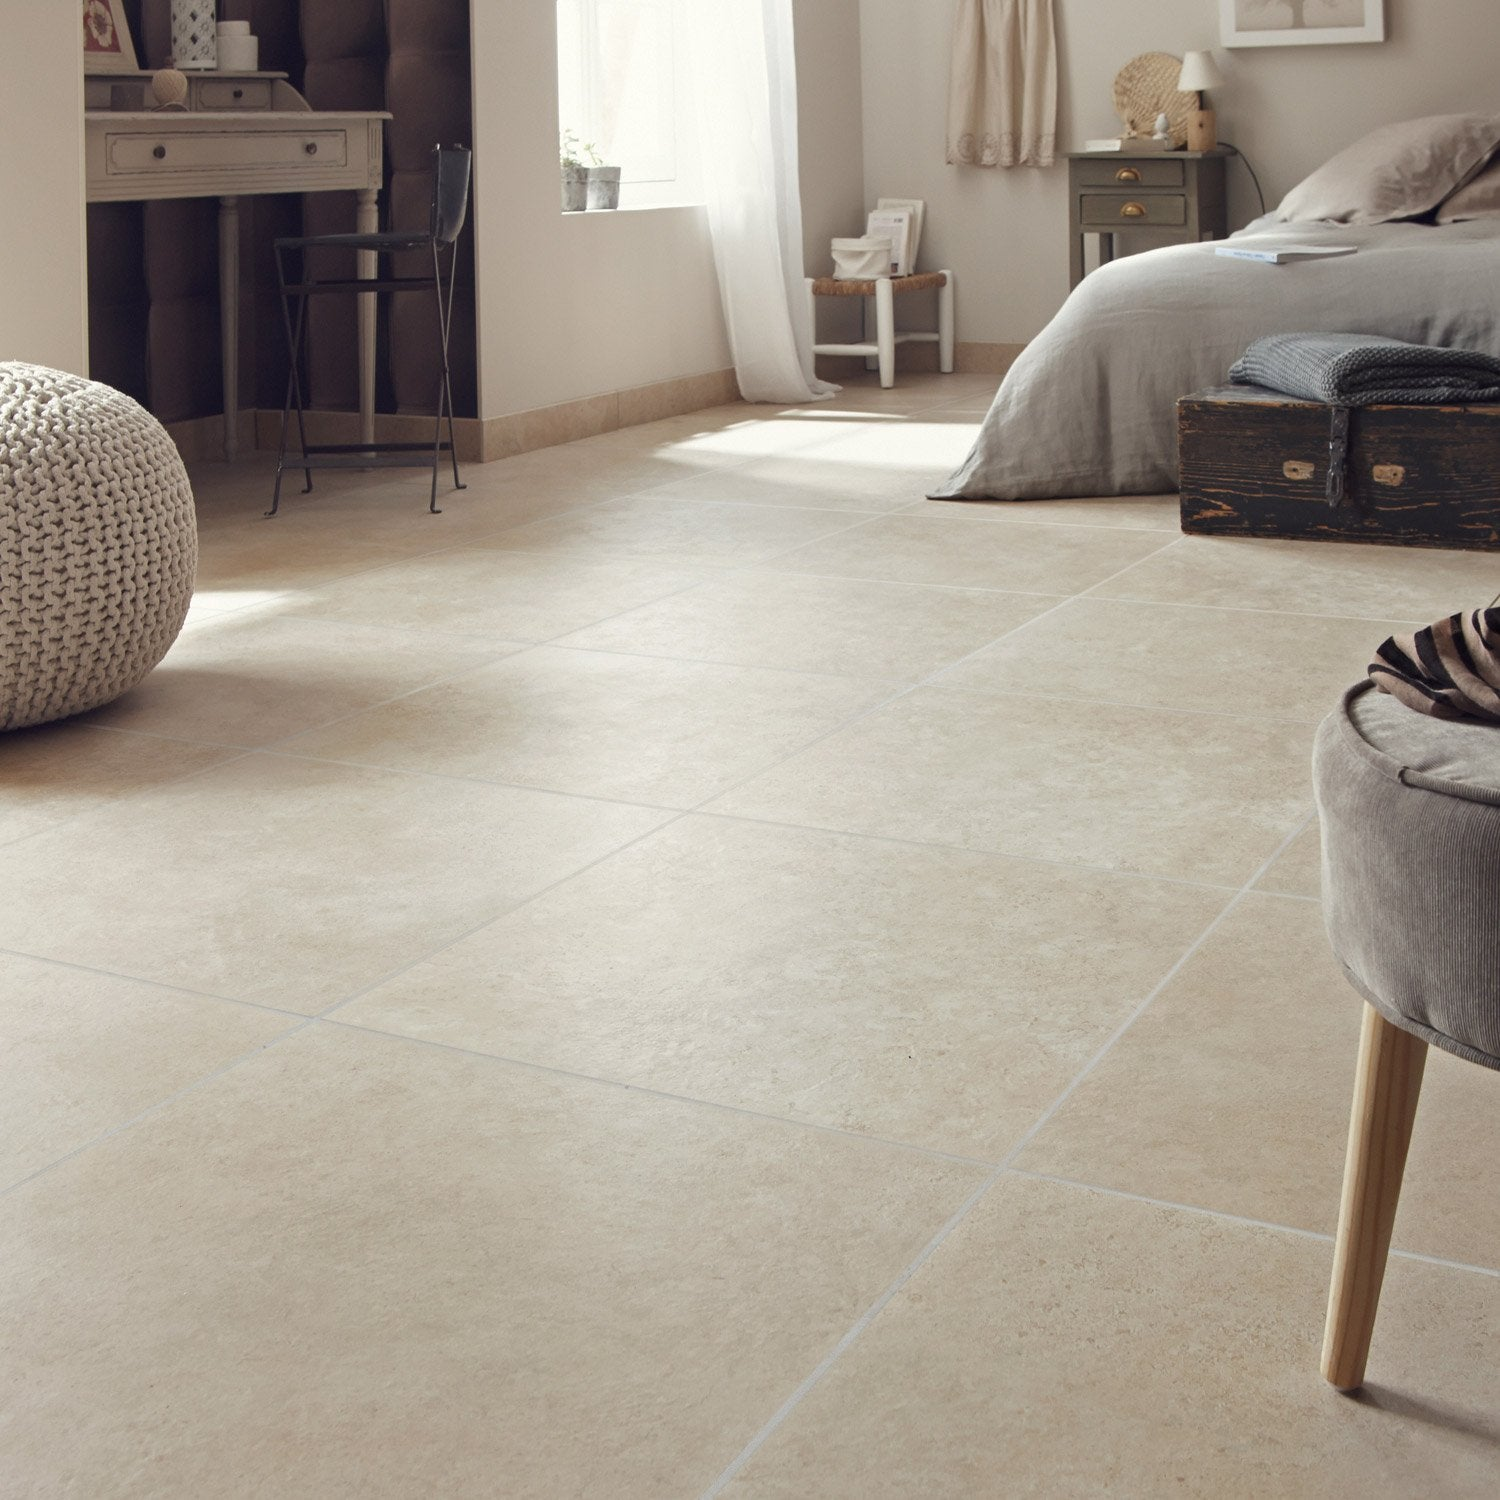 Carrelage 60x60 beige for Leroy merlin carrelage interieur